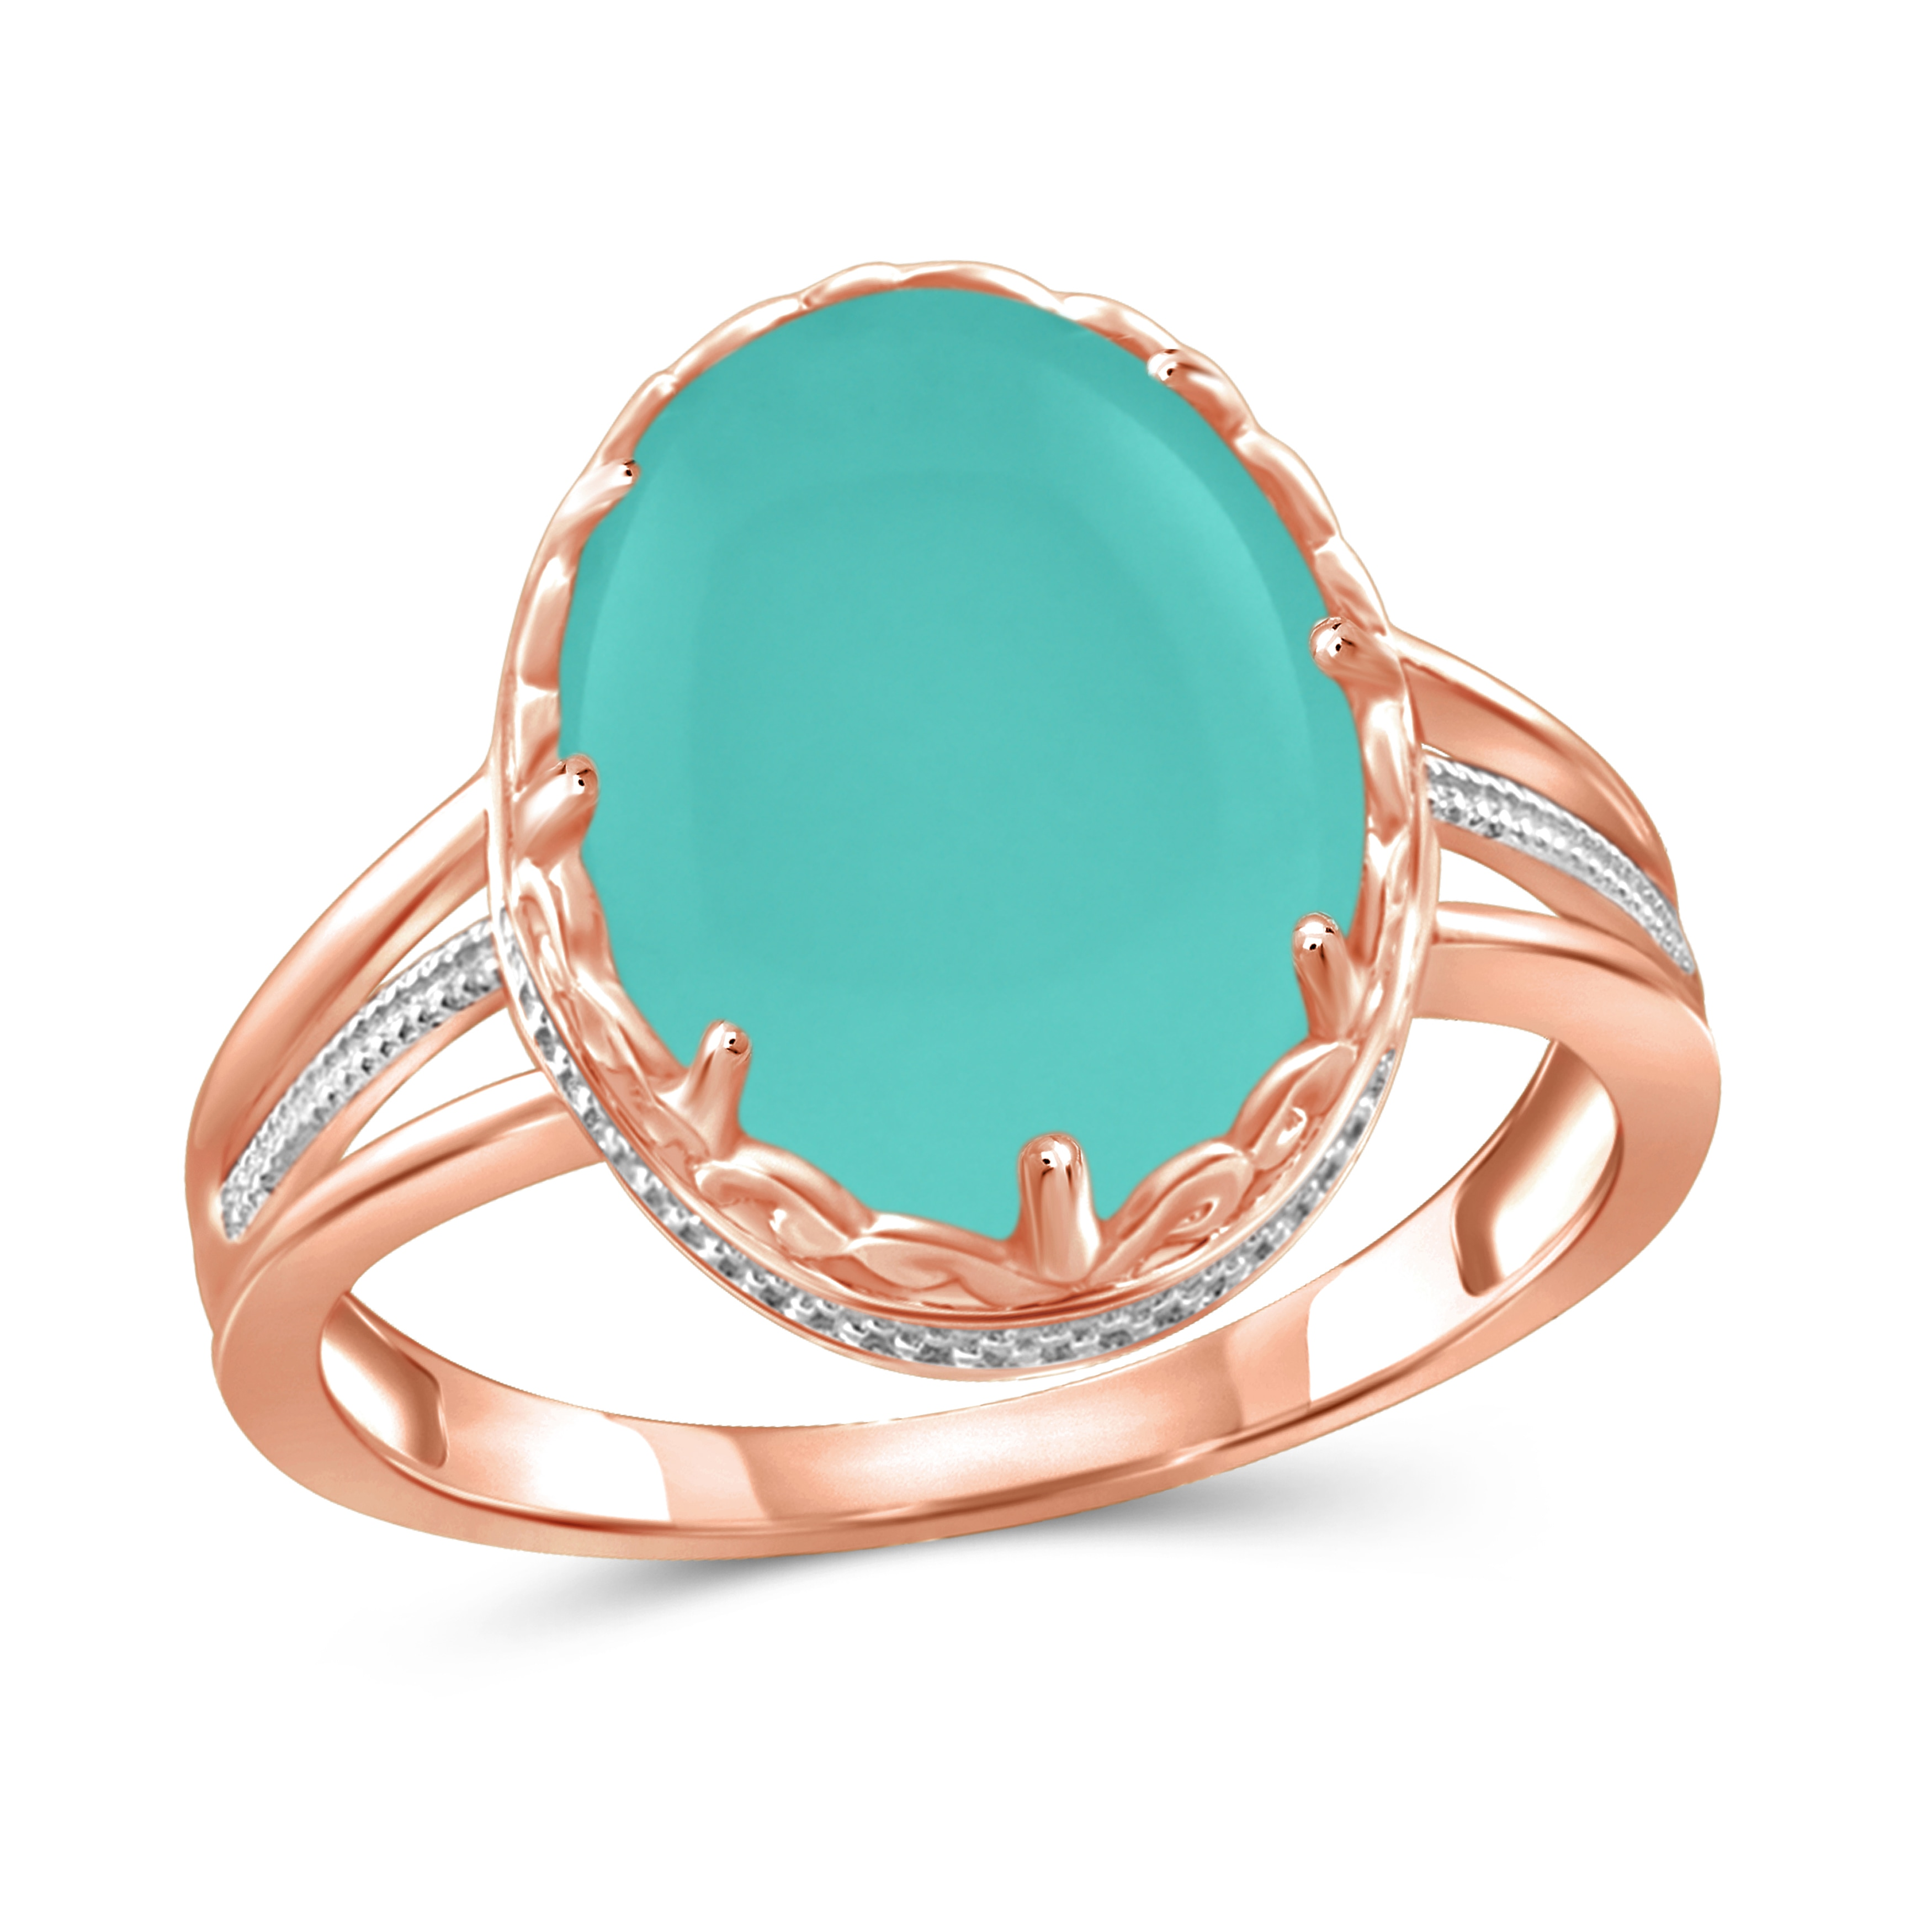 JewelonFire Sterling Silver Genuine Chalcedony Gemstone Ring by Overstock